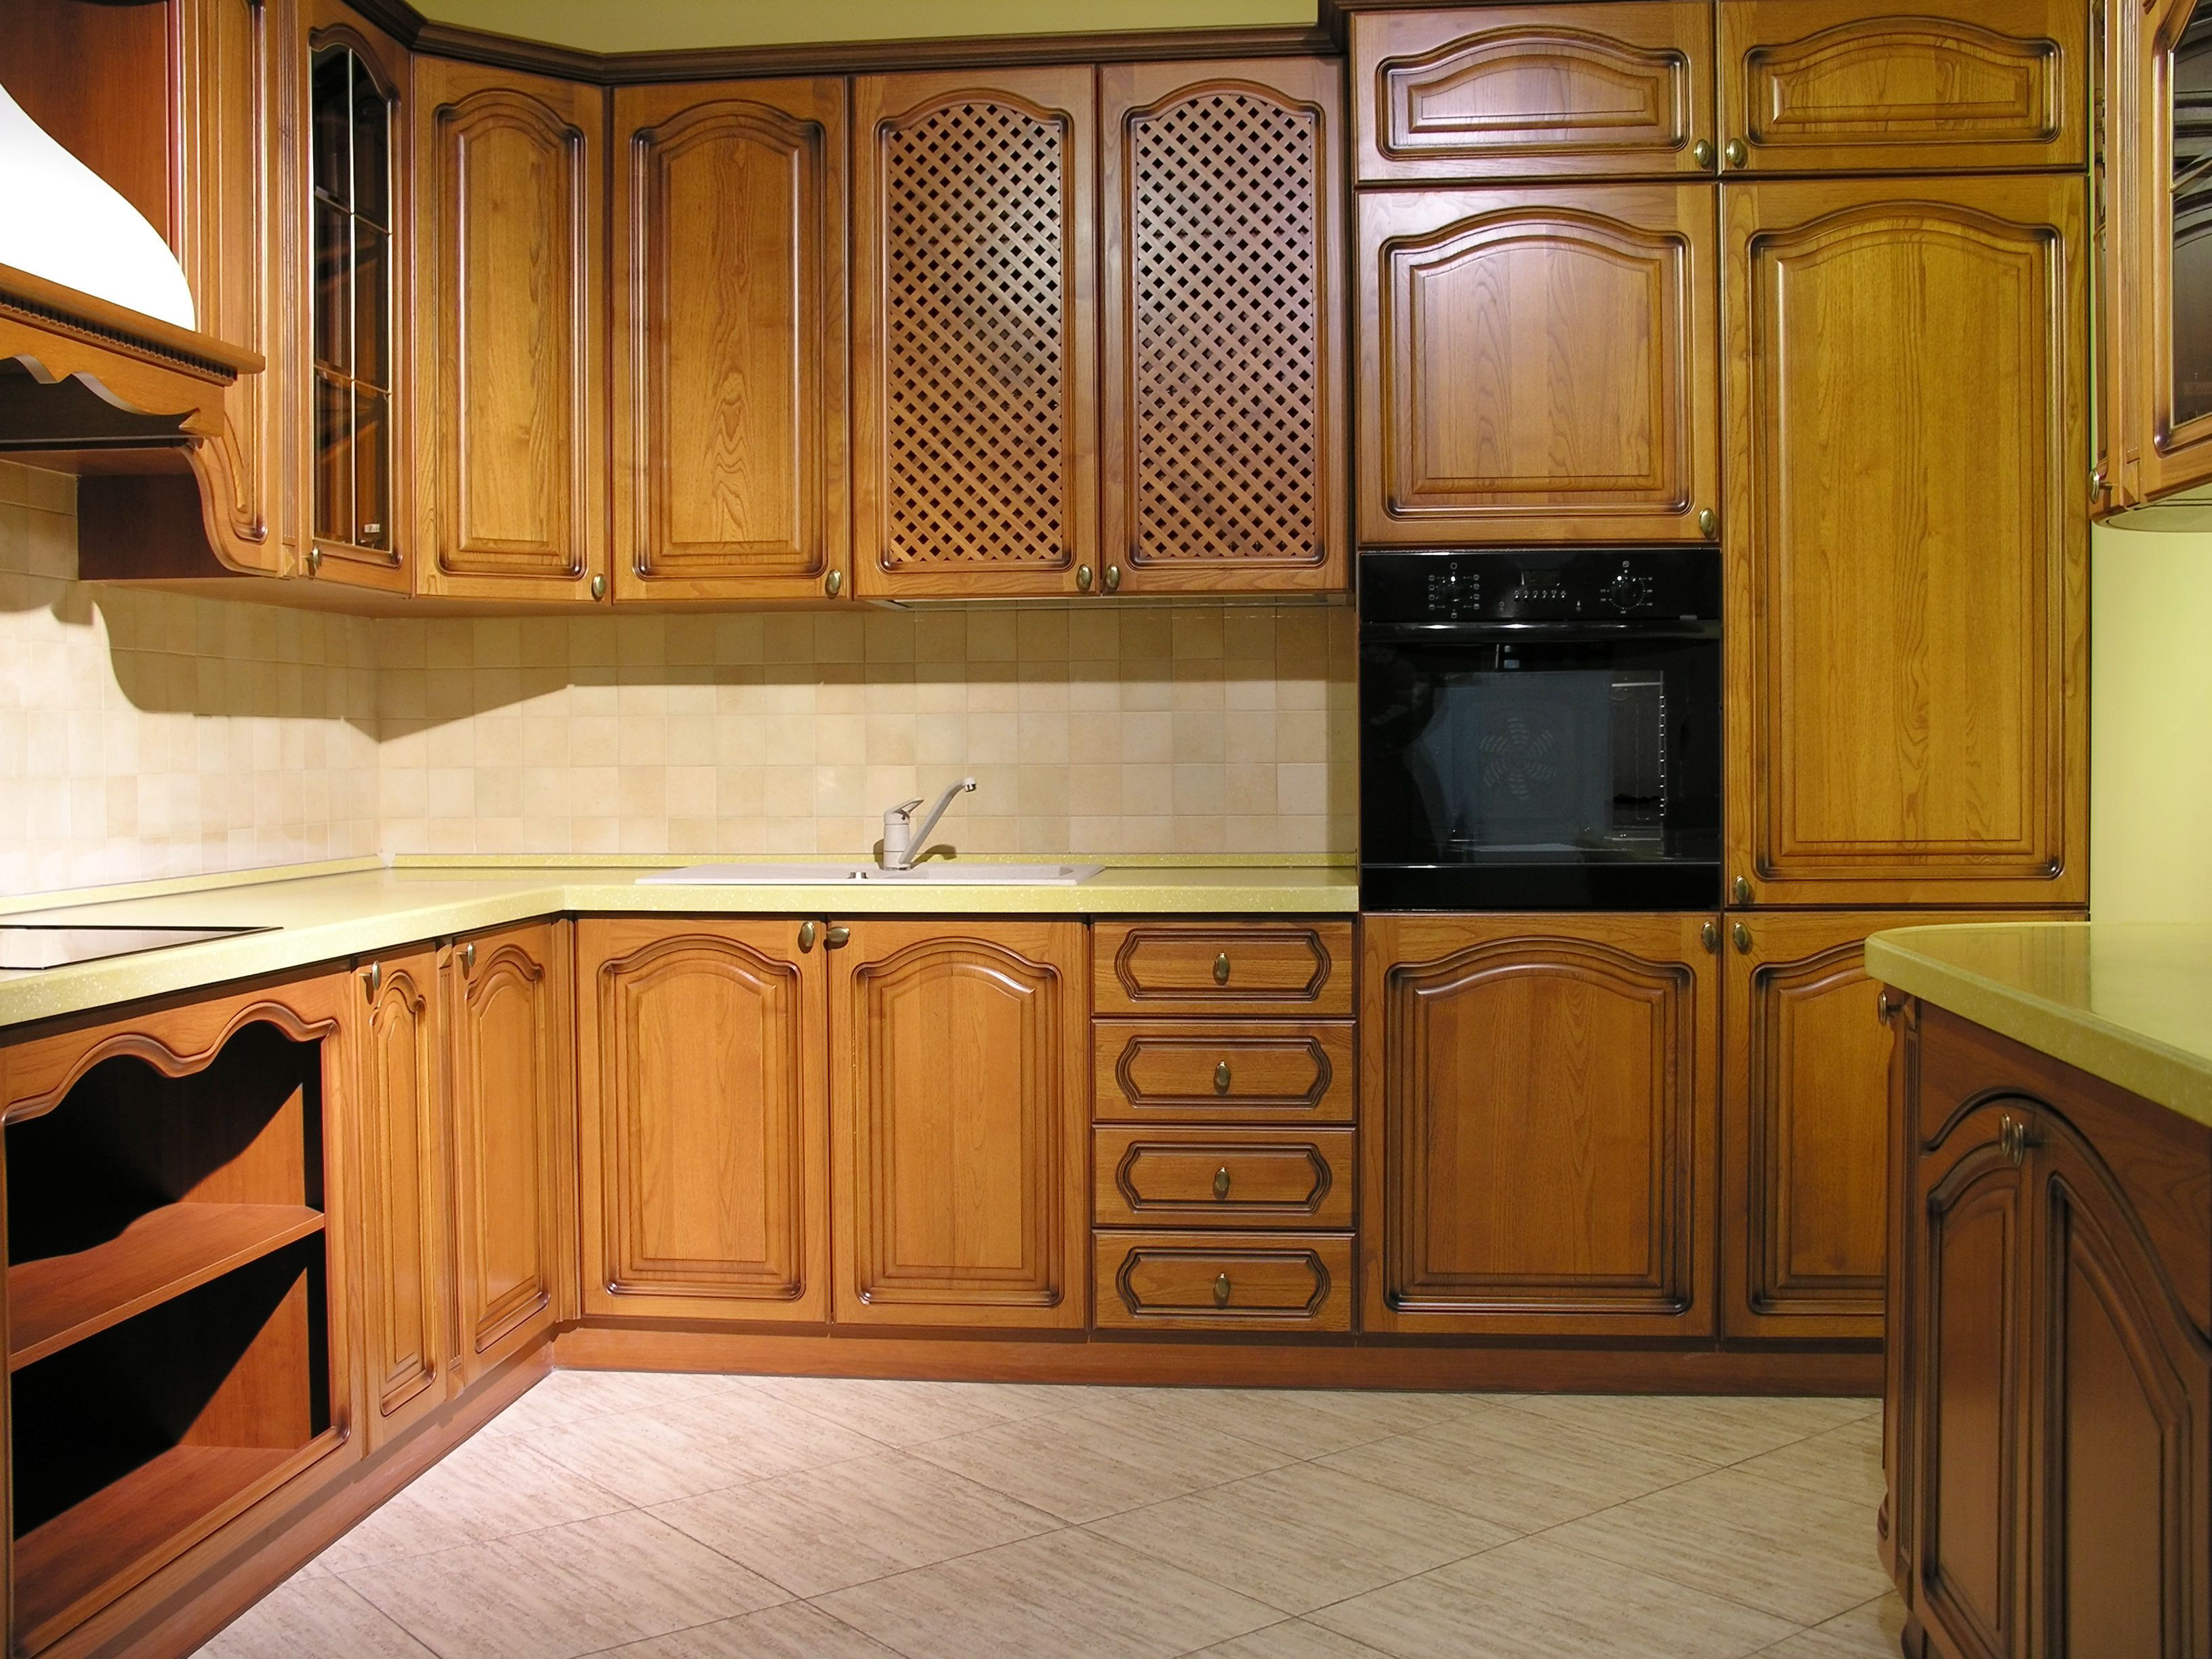 Wooden Kitchen Cabinets Wholesale Image Cabinets And